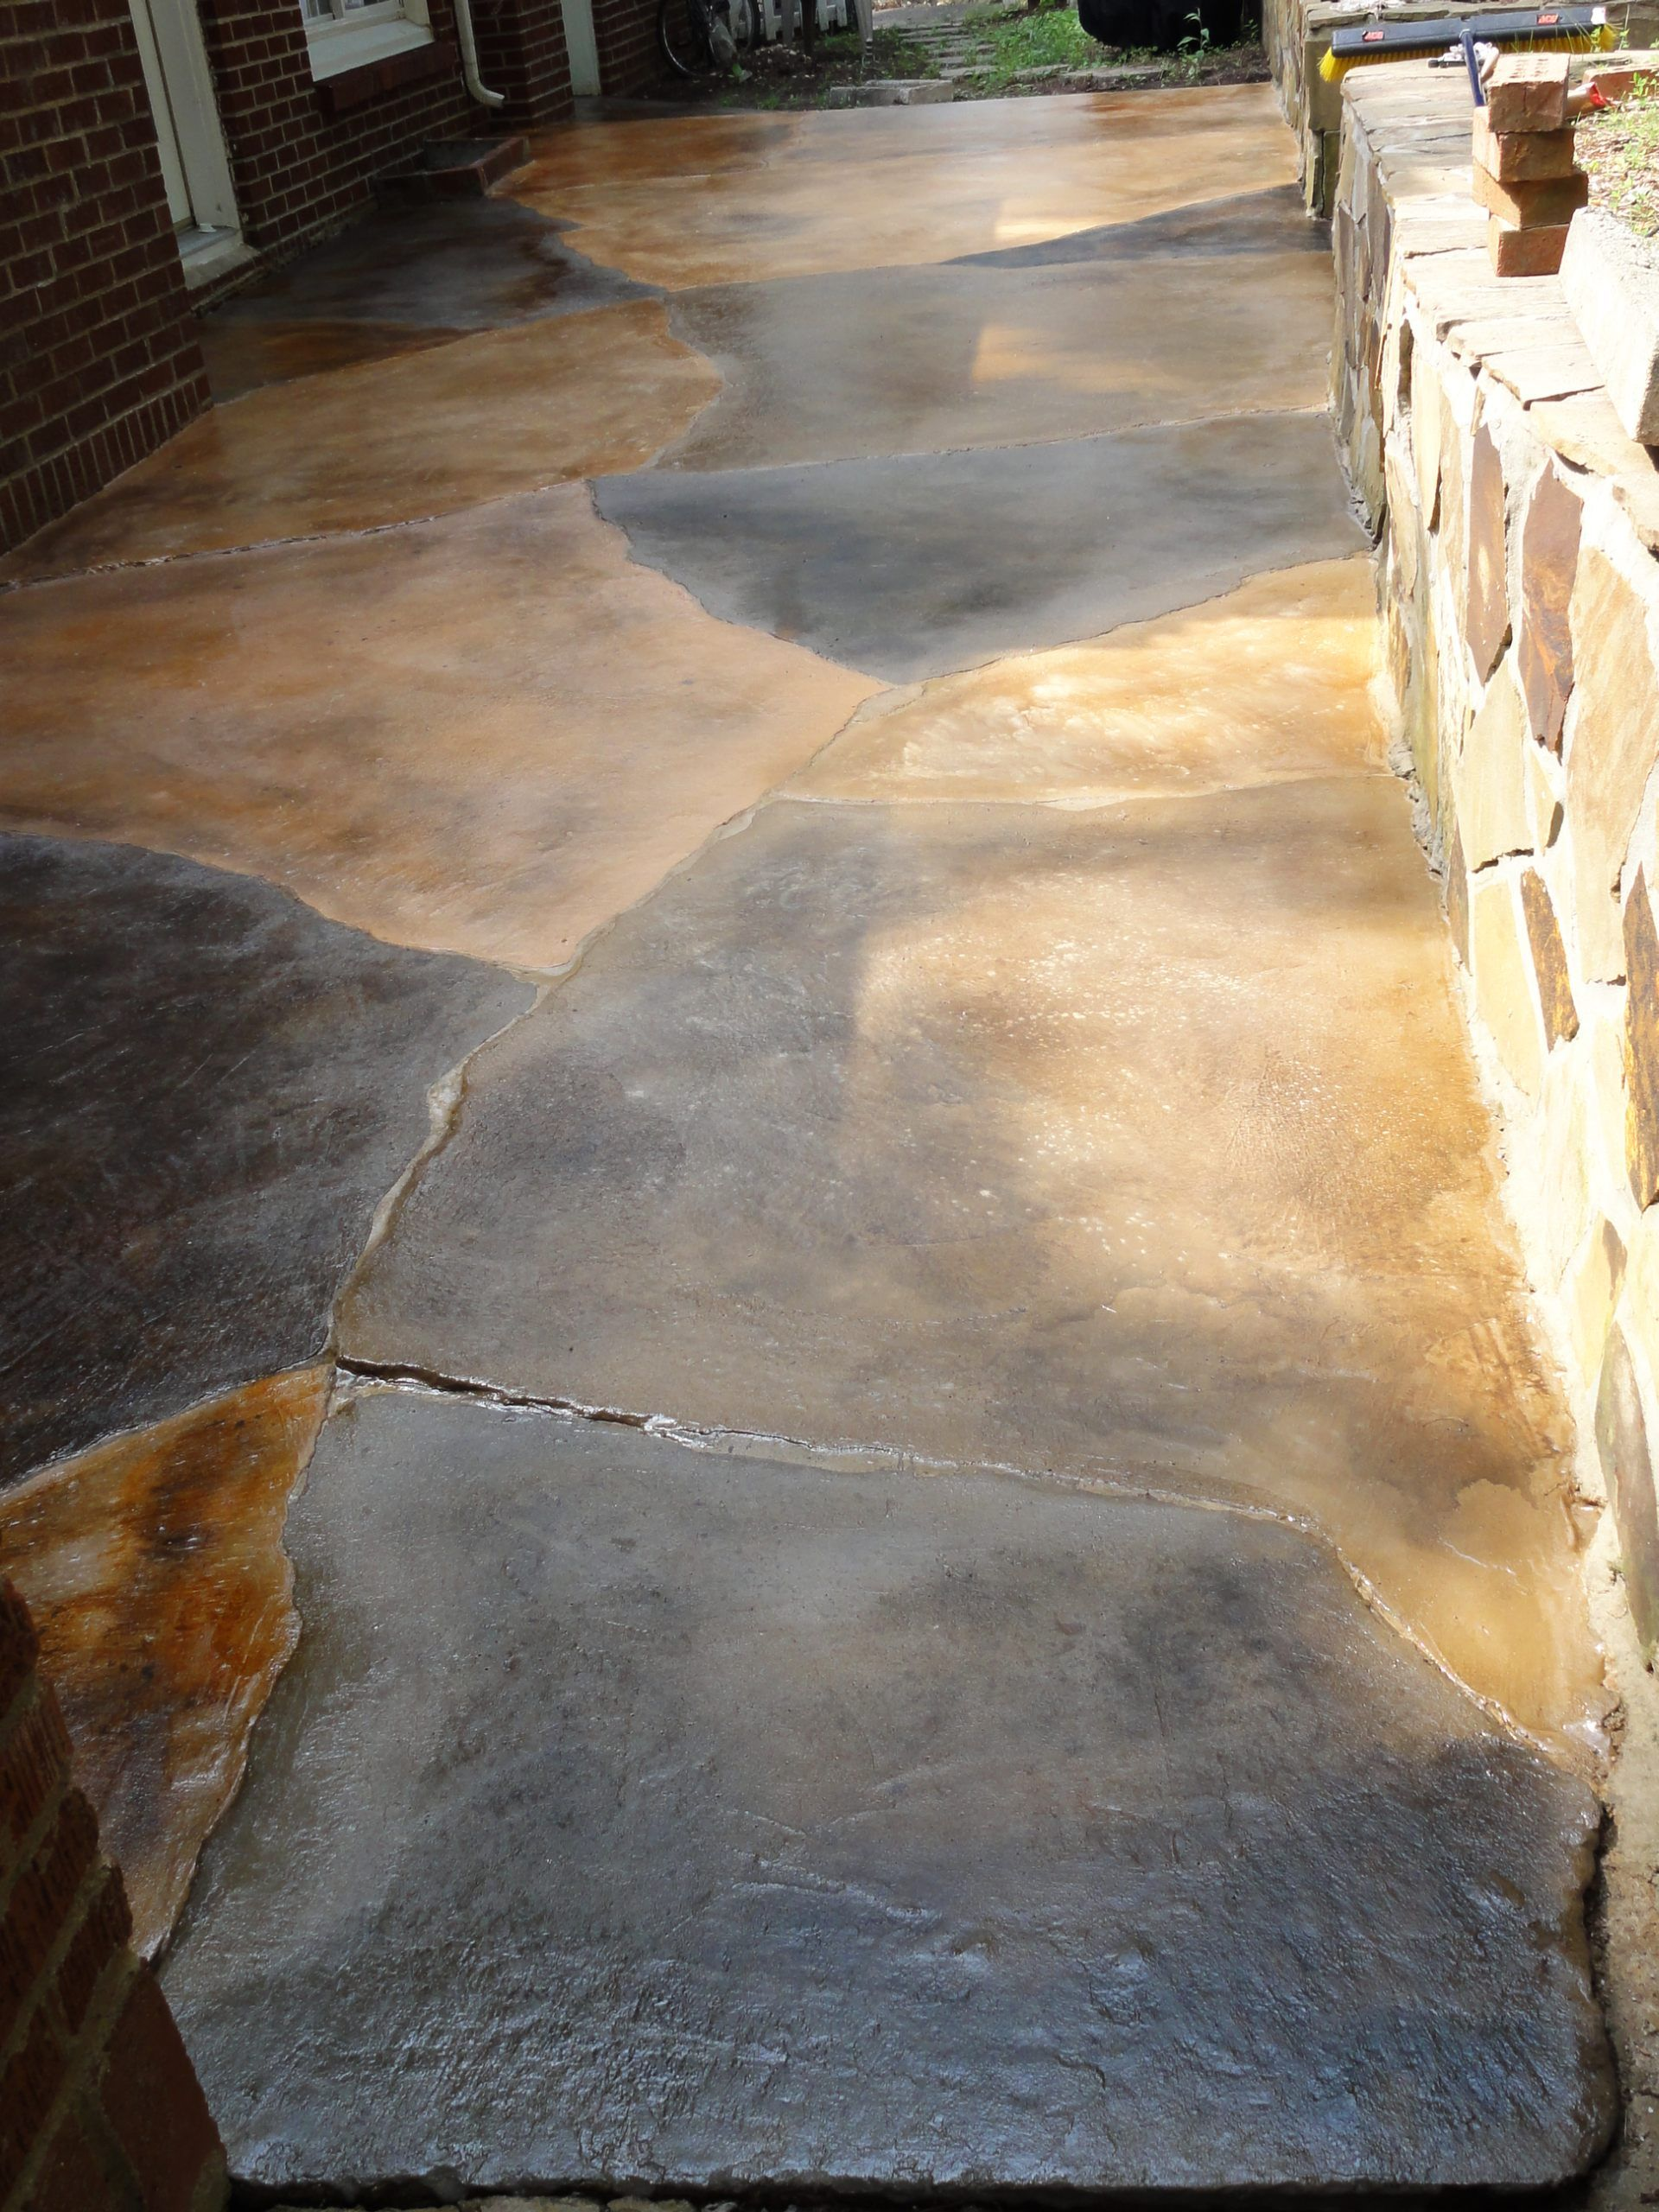 Ed Patio Concrete Stain Existing S As Mortar